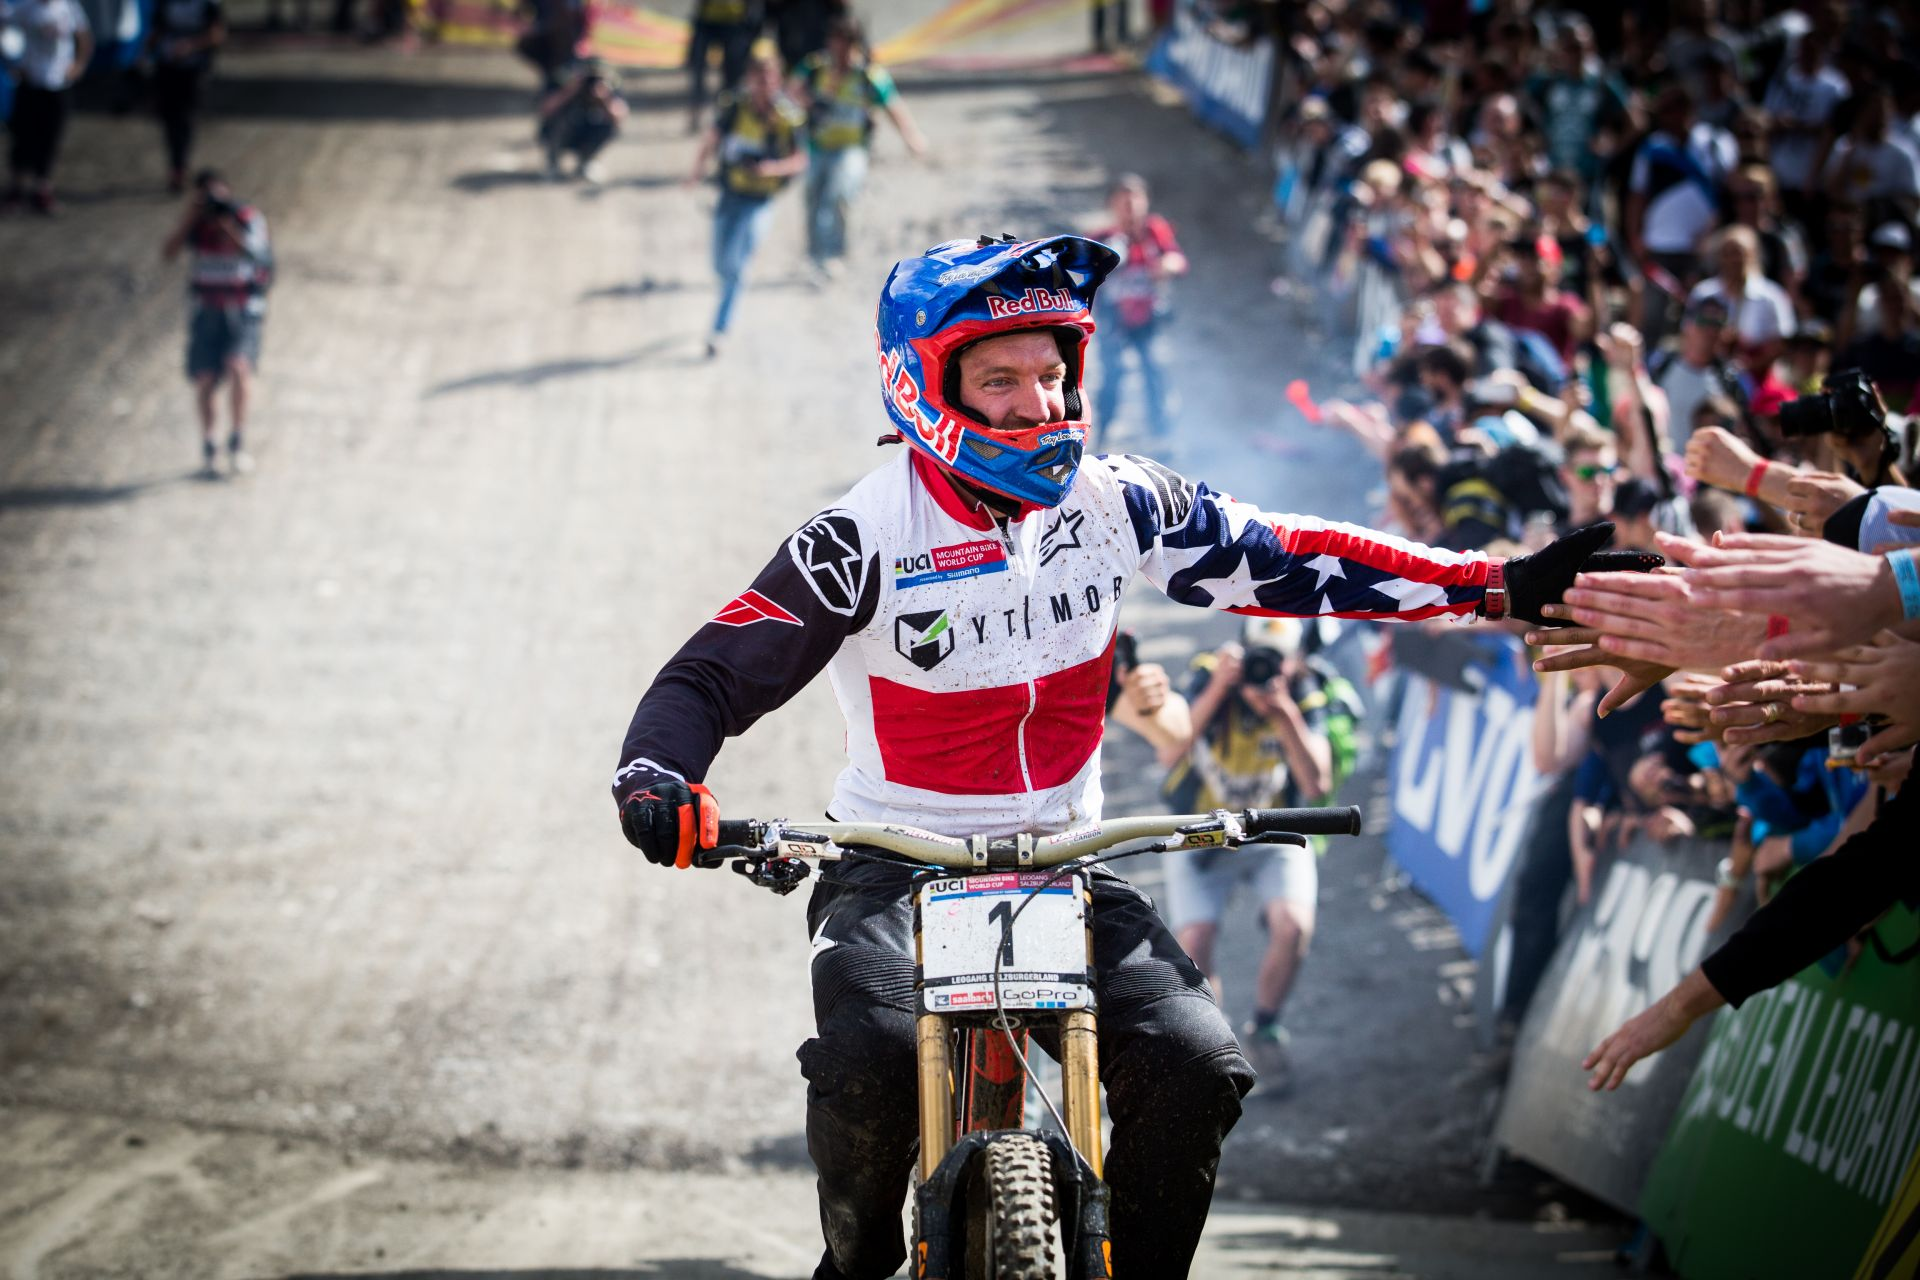 dd568b38517 AARON GWIN TAKES AN IMPRESSIVE SECOND WORLD CUP WIN FOR THE SEASON